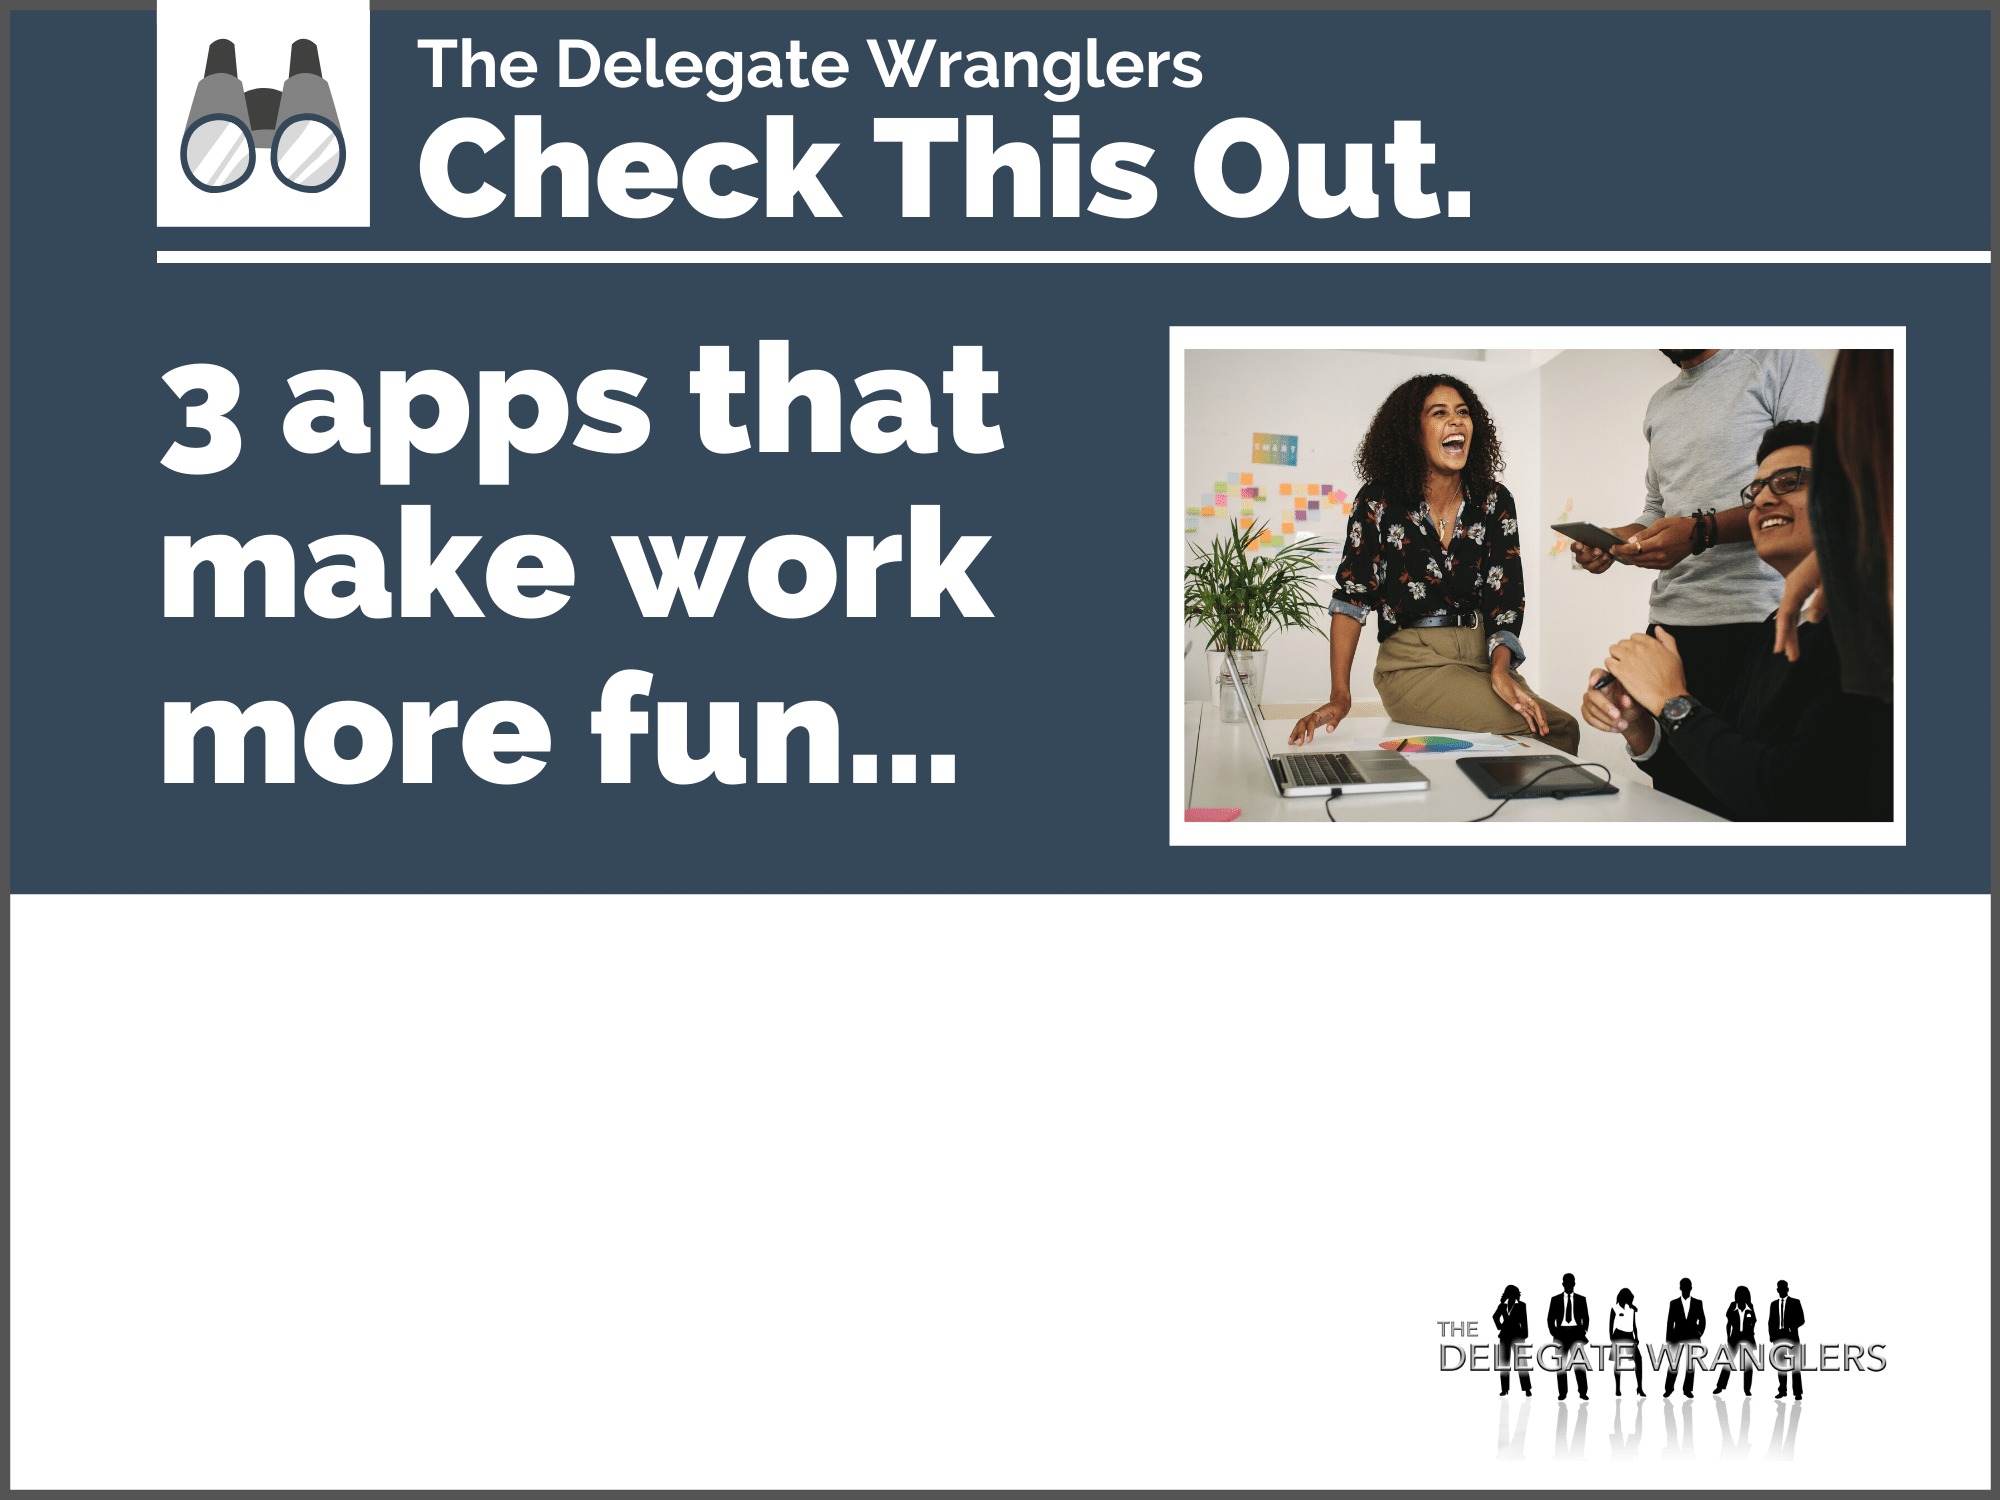 3 apps that make work more fun